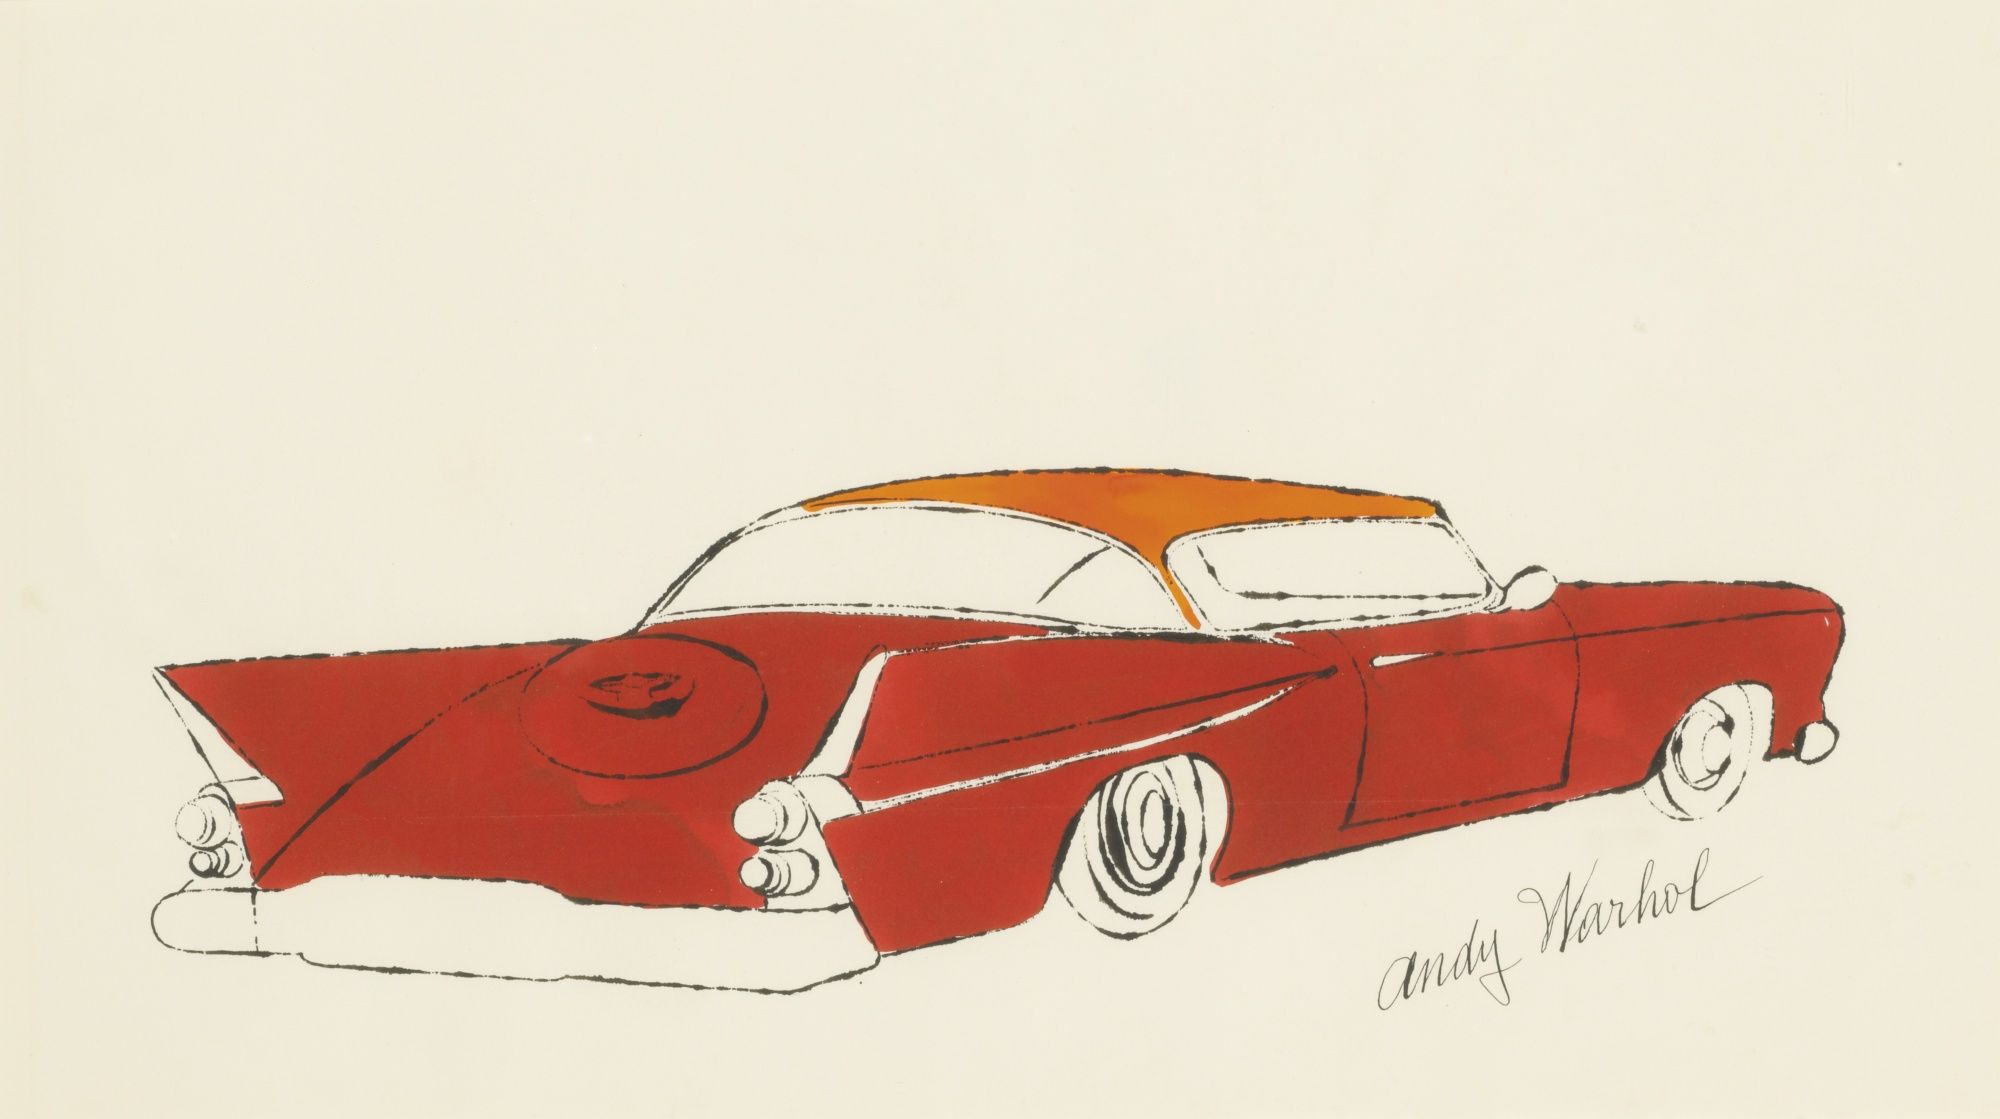 UNTITLED (RED CAR)